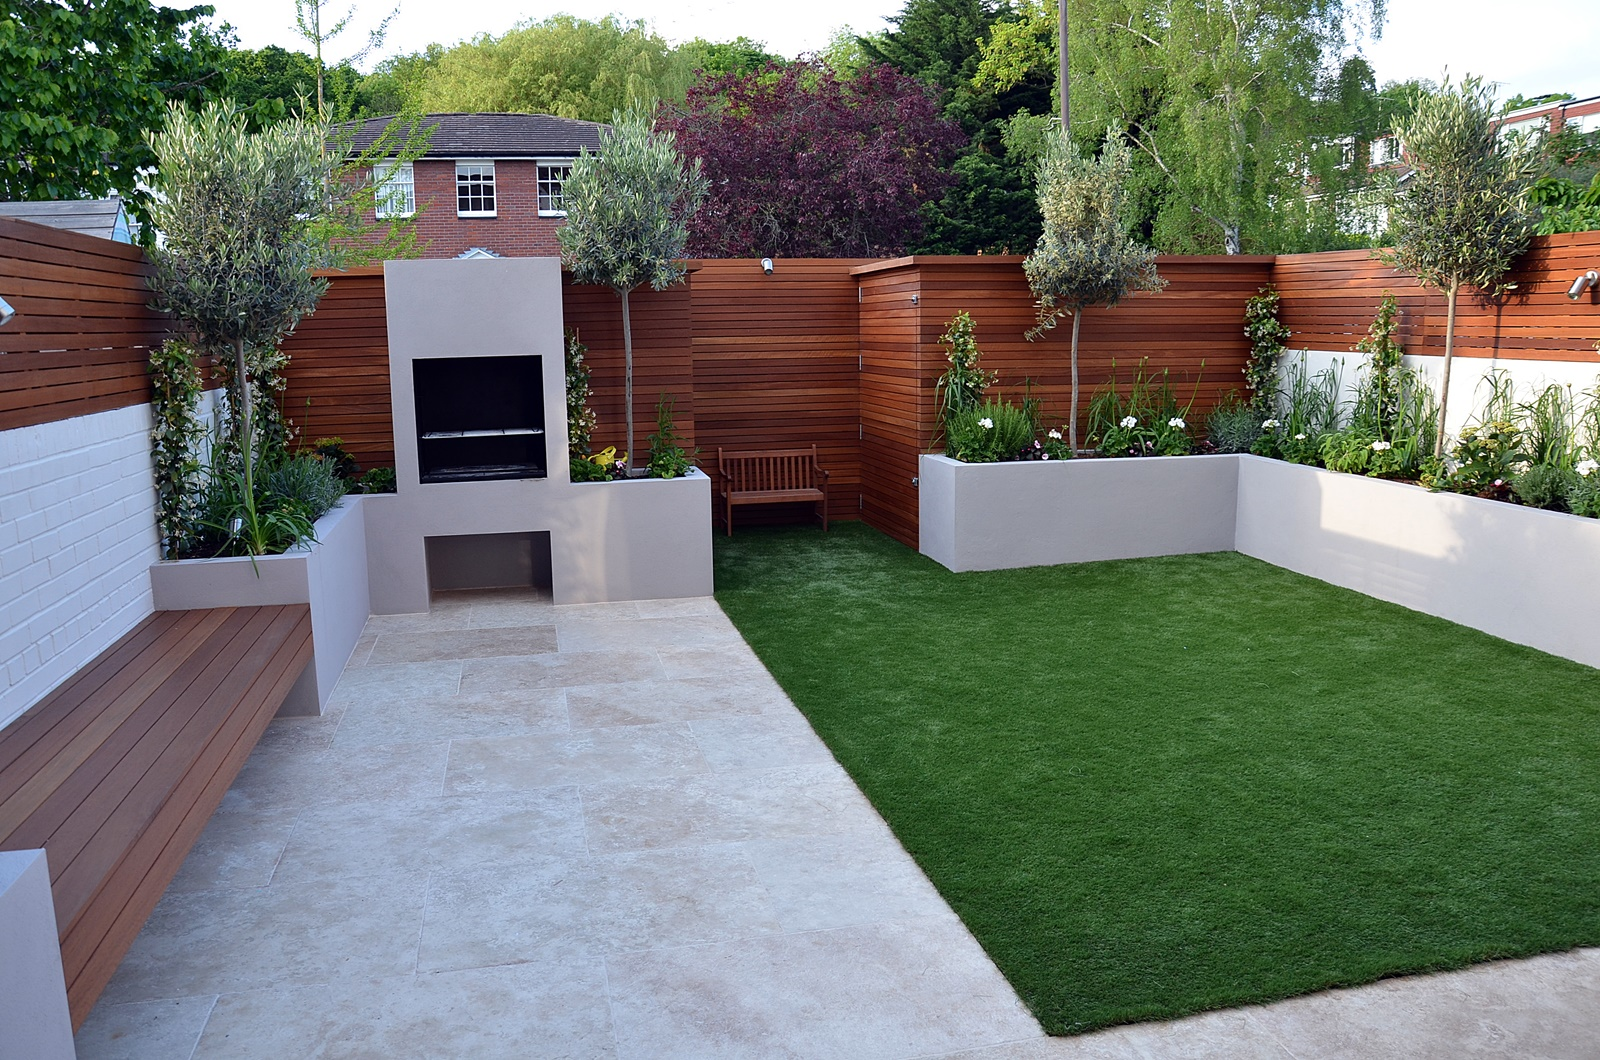 Inspiring contemporary garden design garden design 24 for Garden designs uk